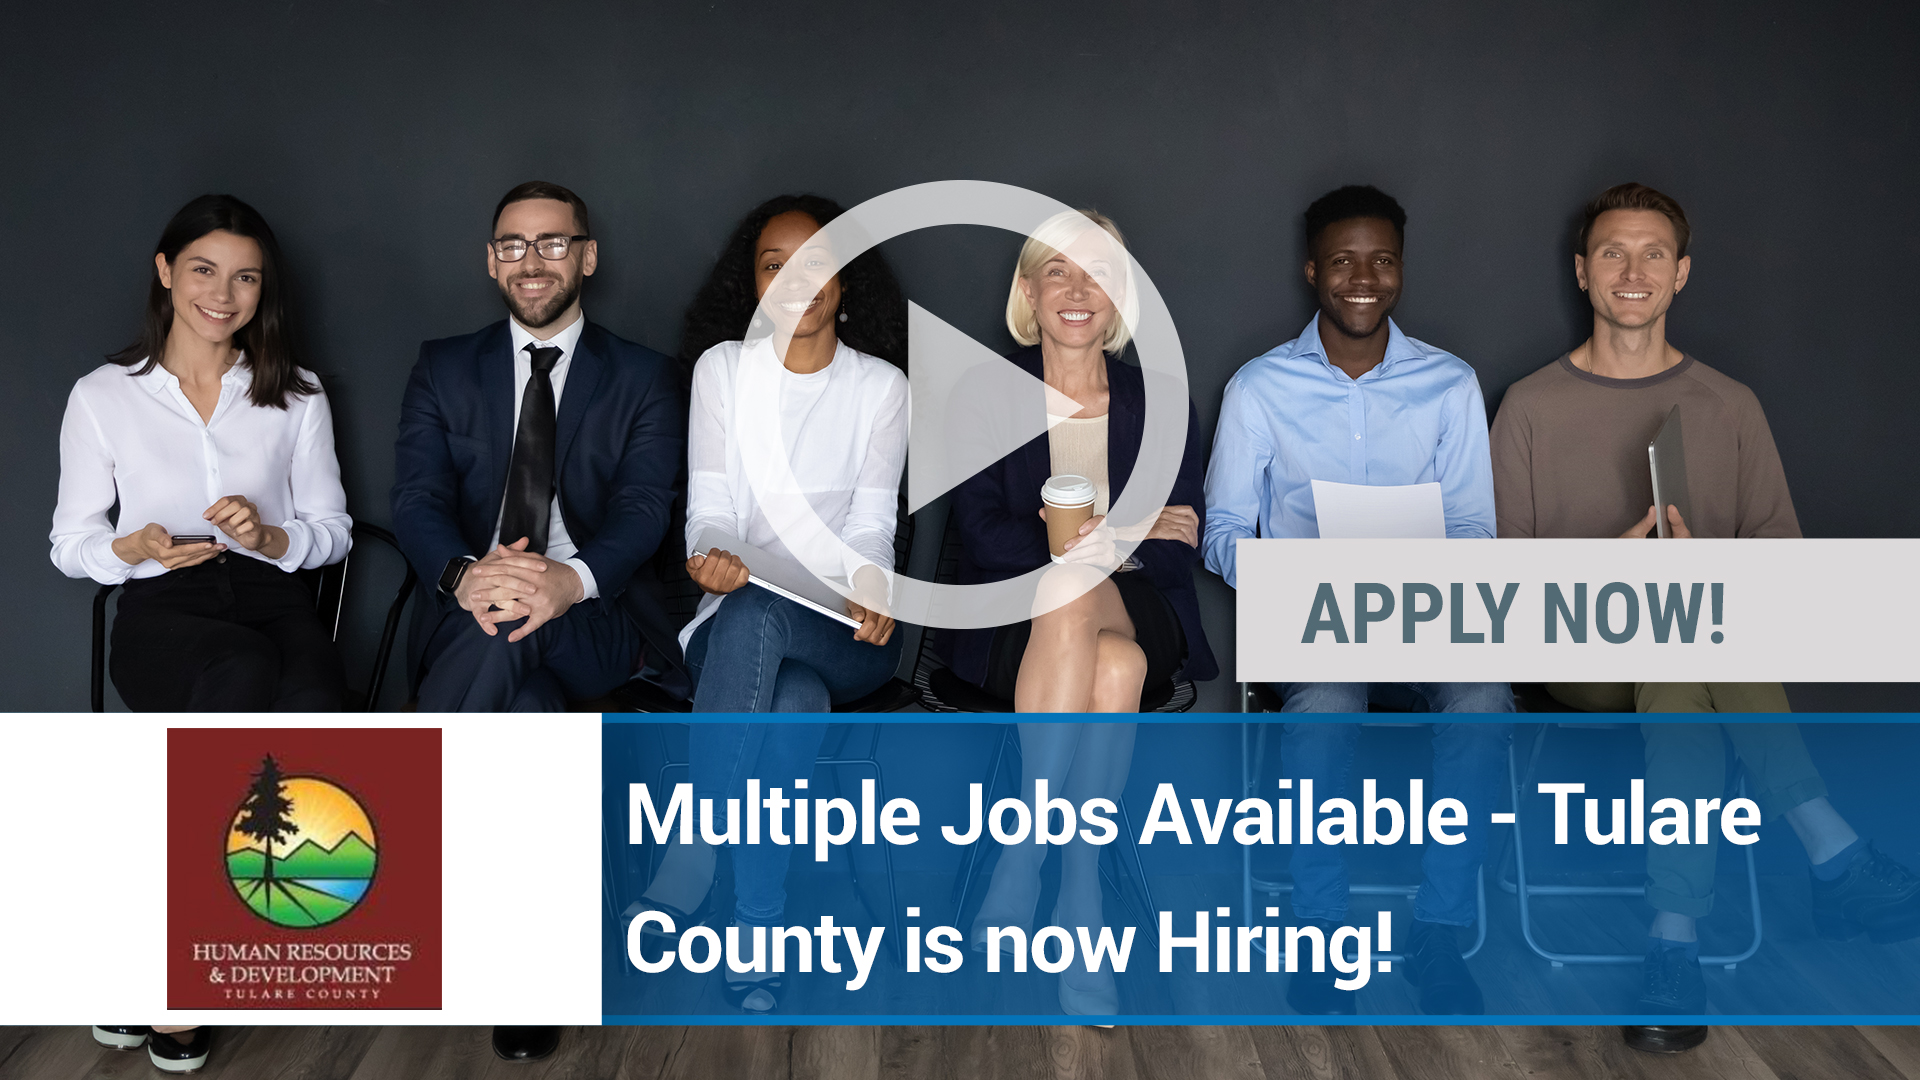 Watch our careers video for available job opening Multiple Jobs Available - Tulare County is now Hi in Visalia, CA